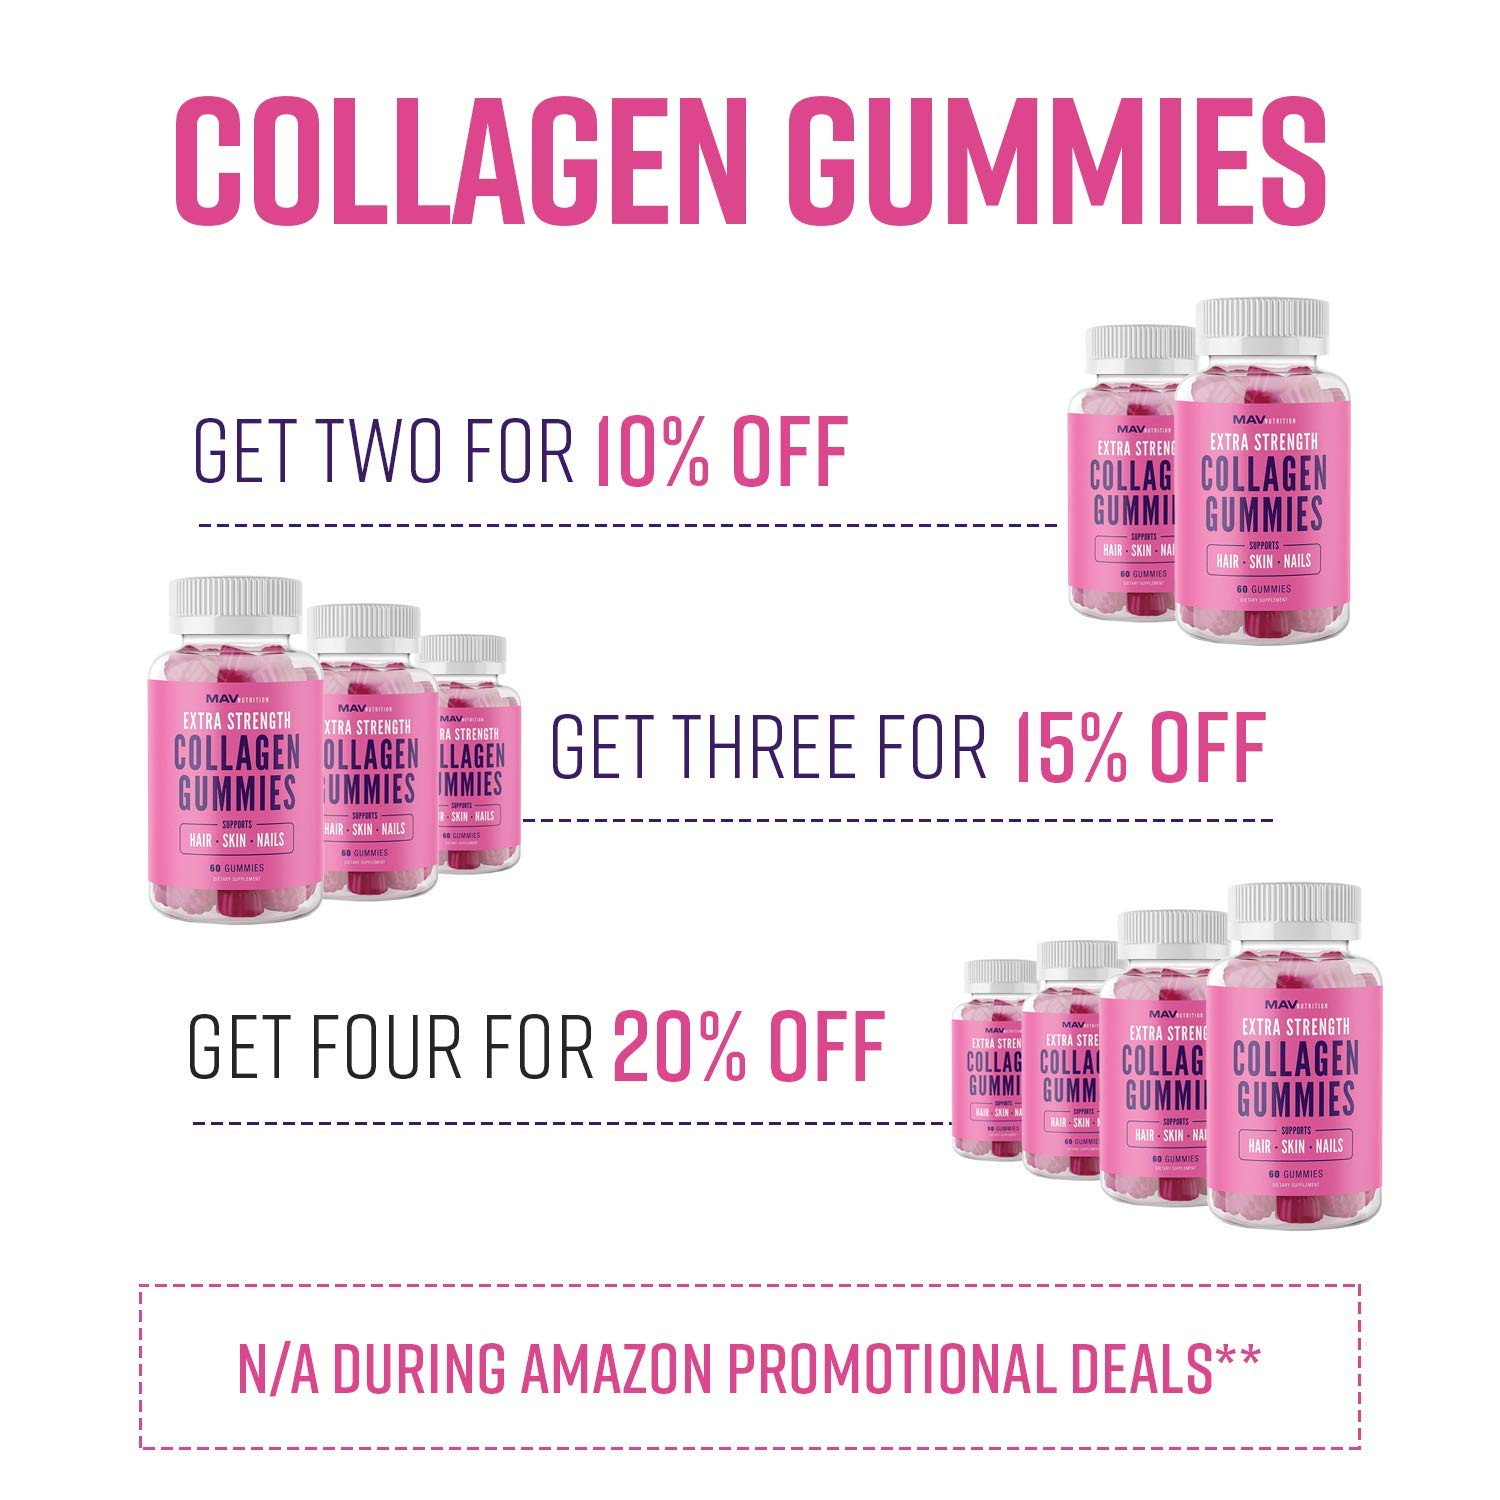 Amazon.com: Collagen Gummies Suplemento para hombres y ...